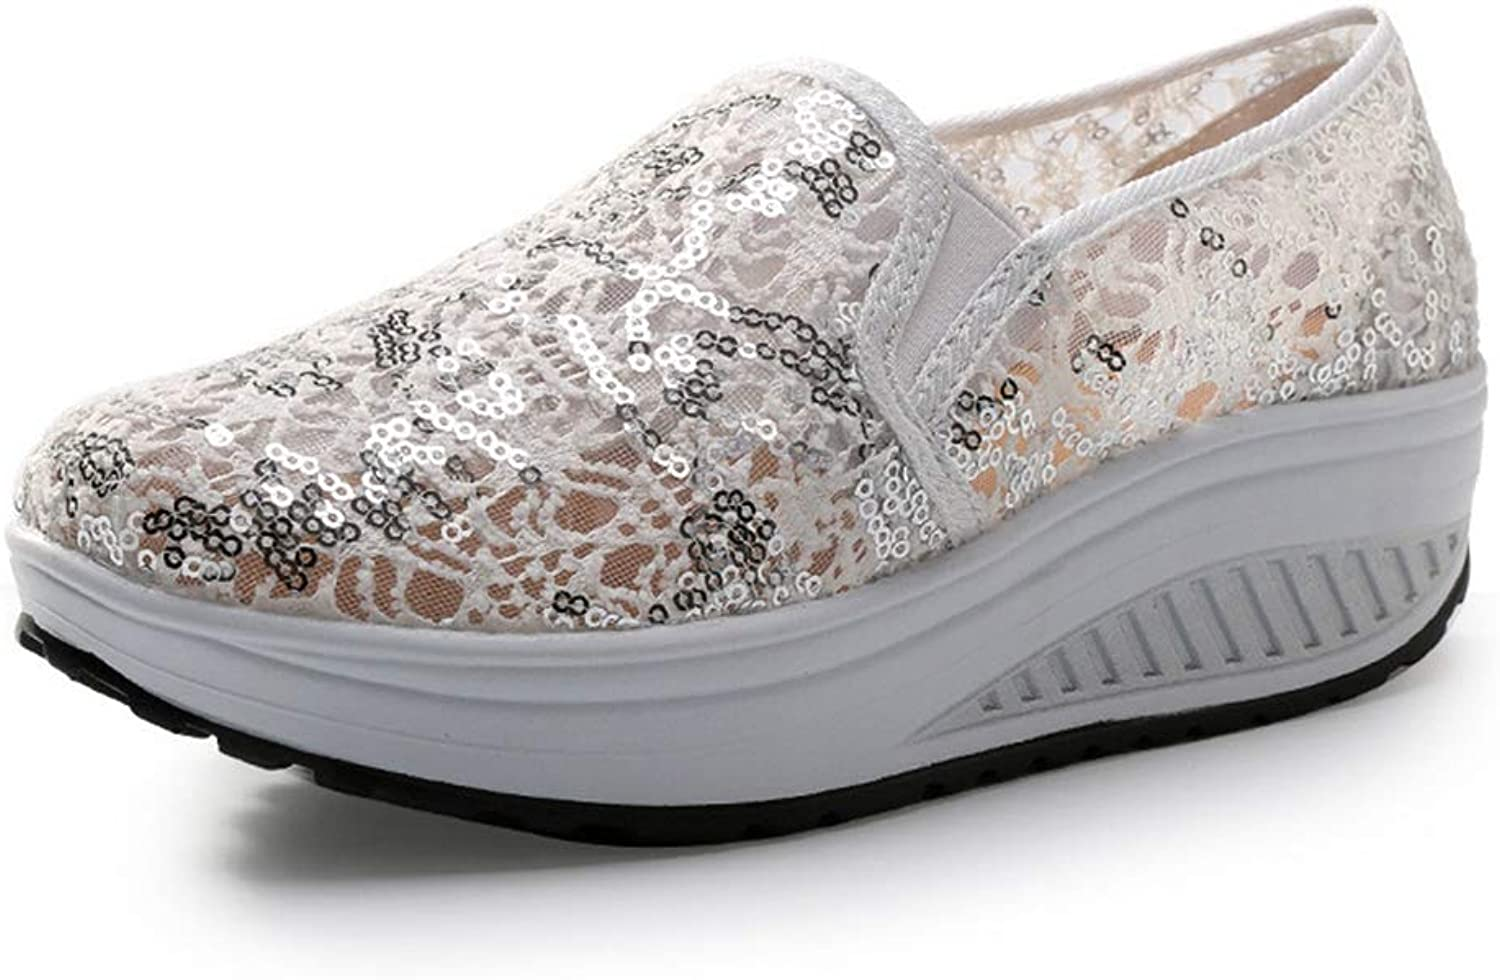 T-JULY Spring Casual Bling Glitter Lace Platform Loafers Women Summer Creepers Slip On Comfortable Flats shoes